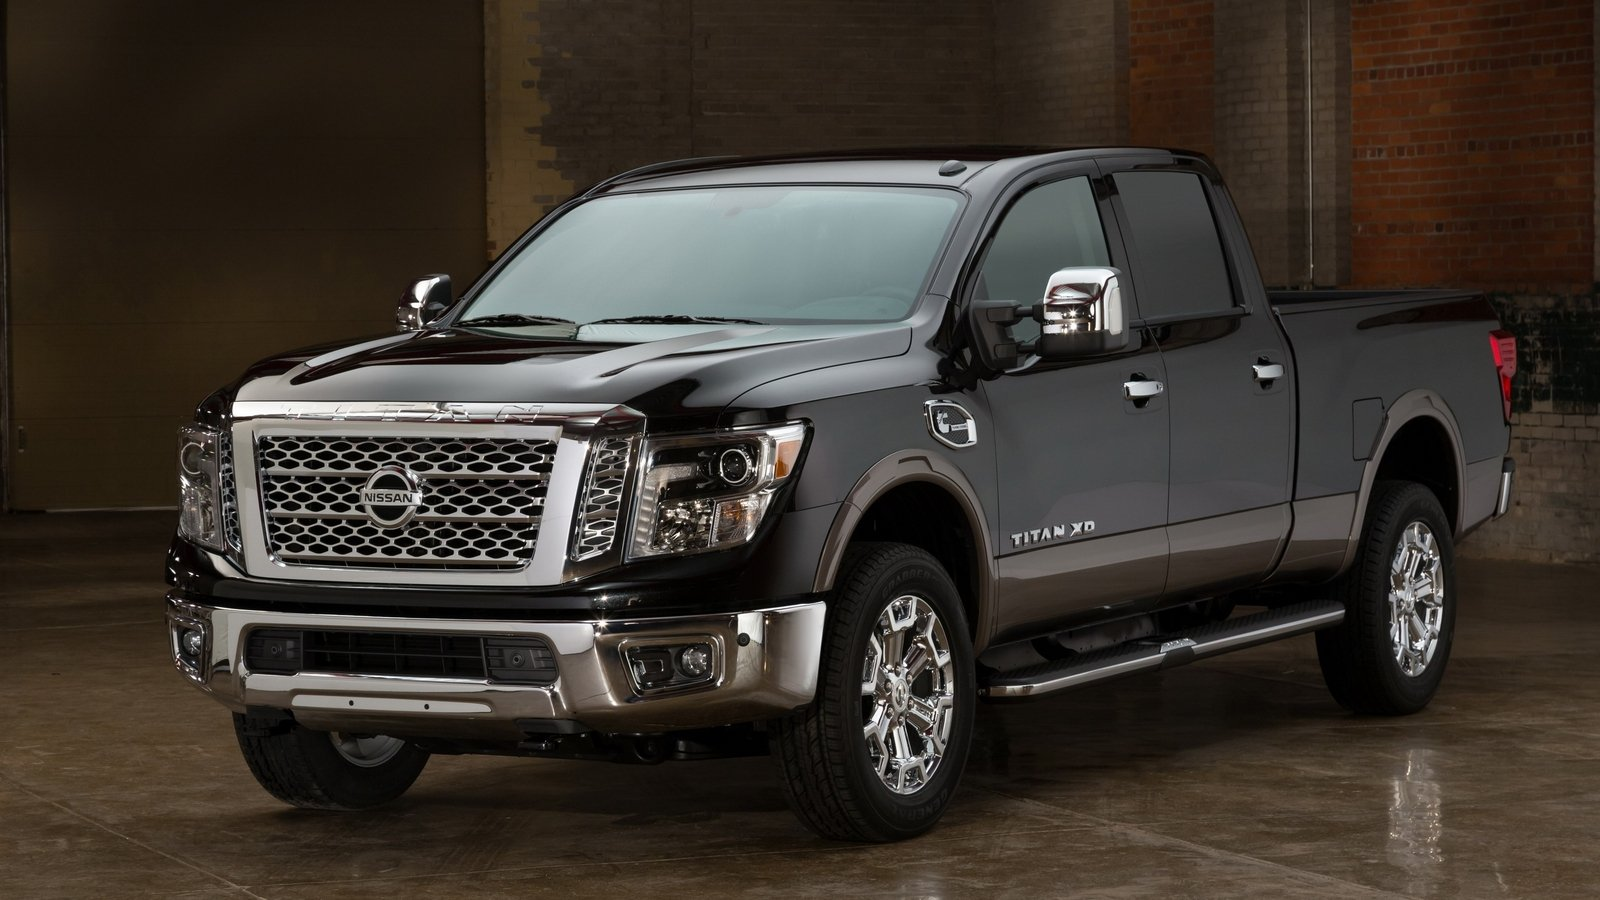 2016 nissan titan xd review top speed. Black Bedroom Furniture Sets. Home Design Ideas